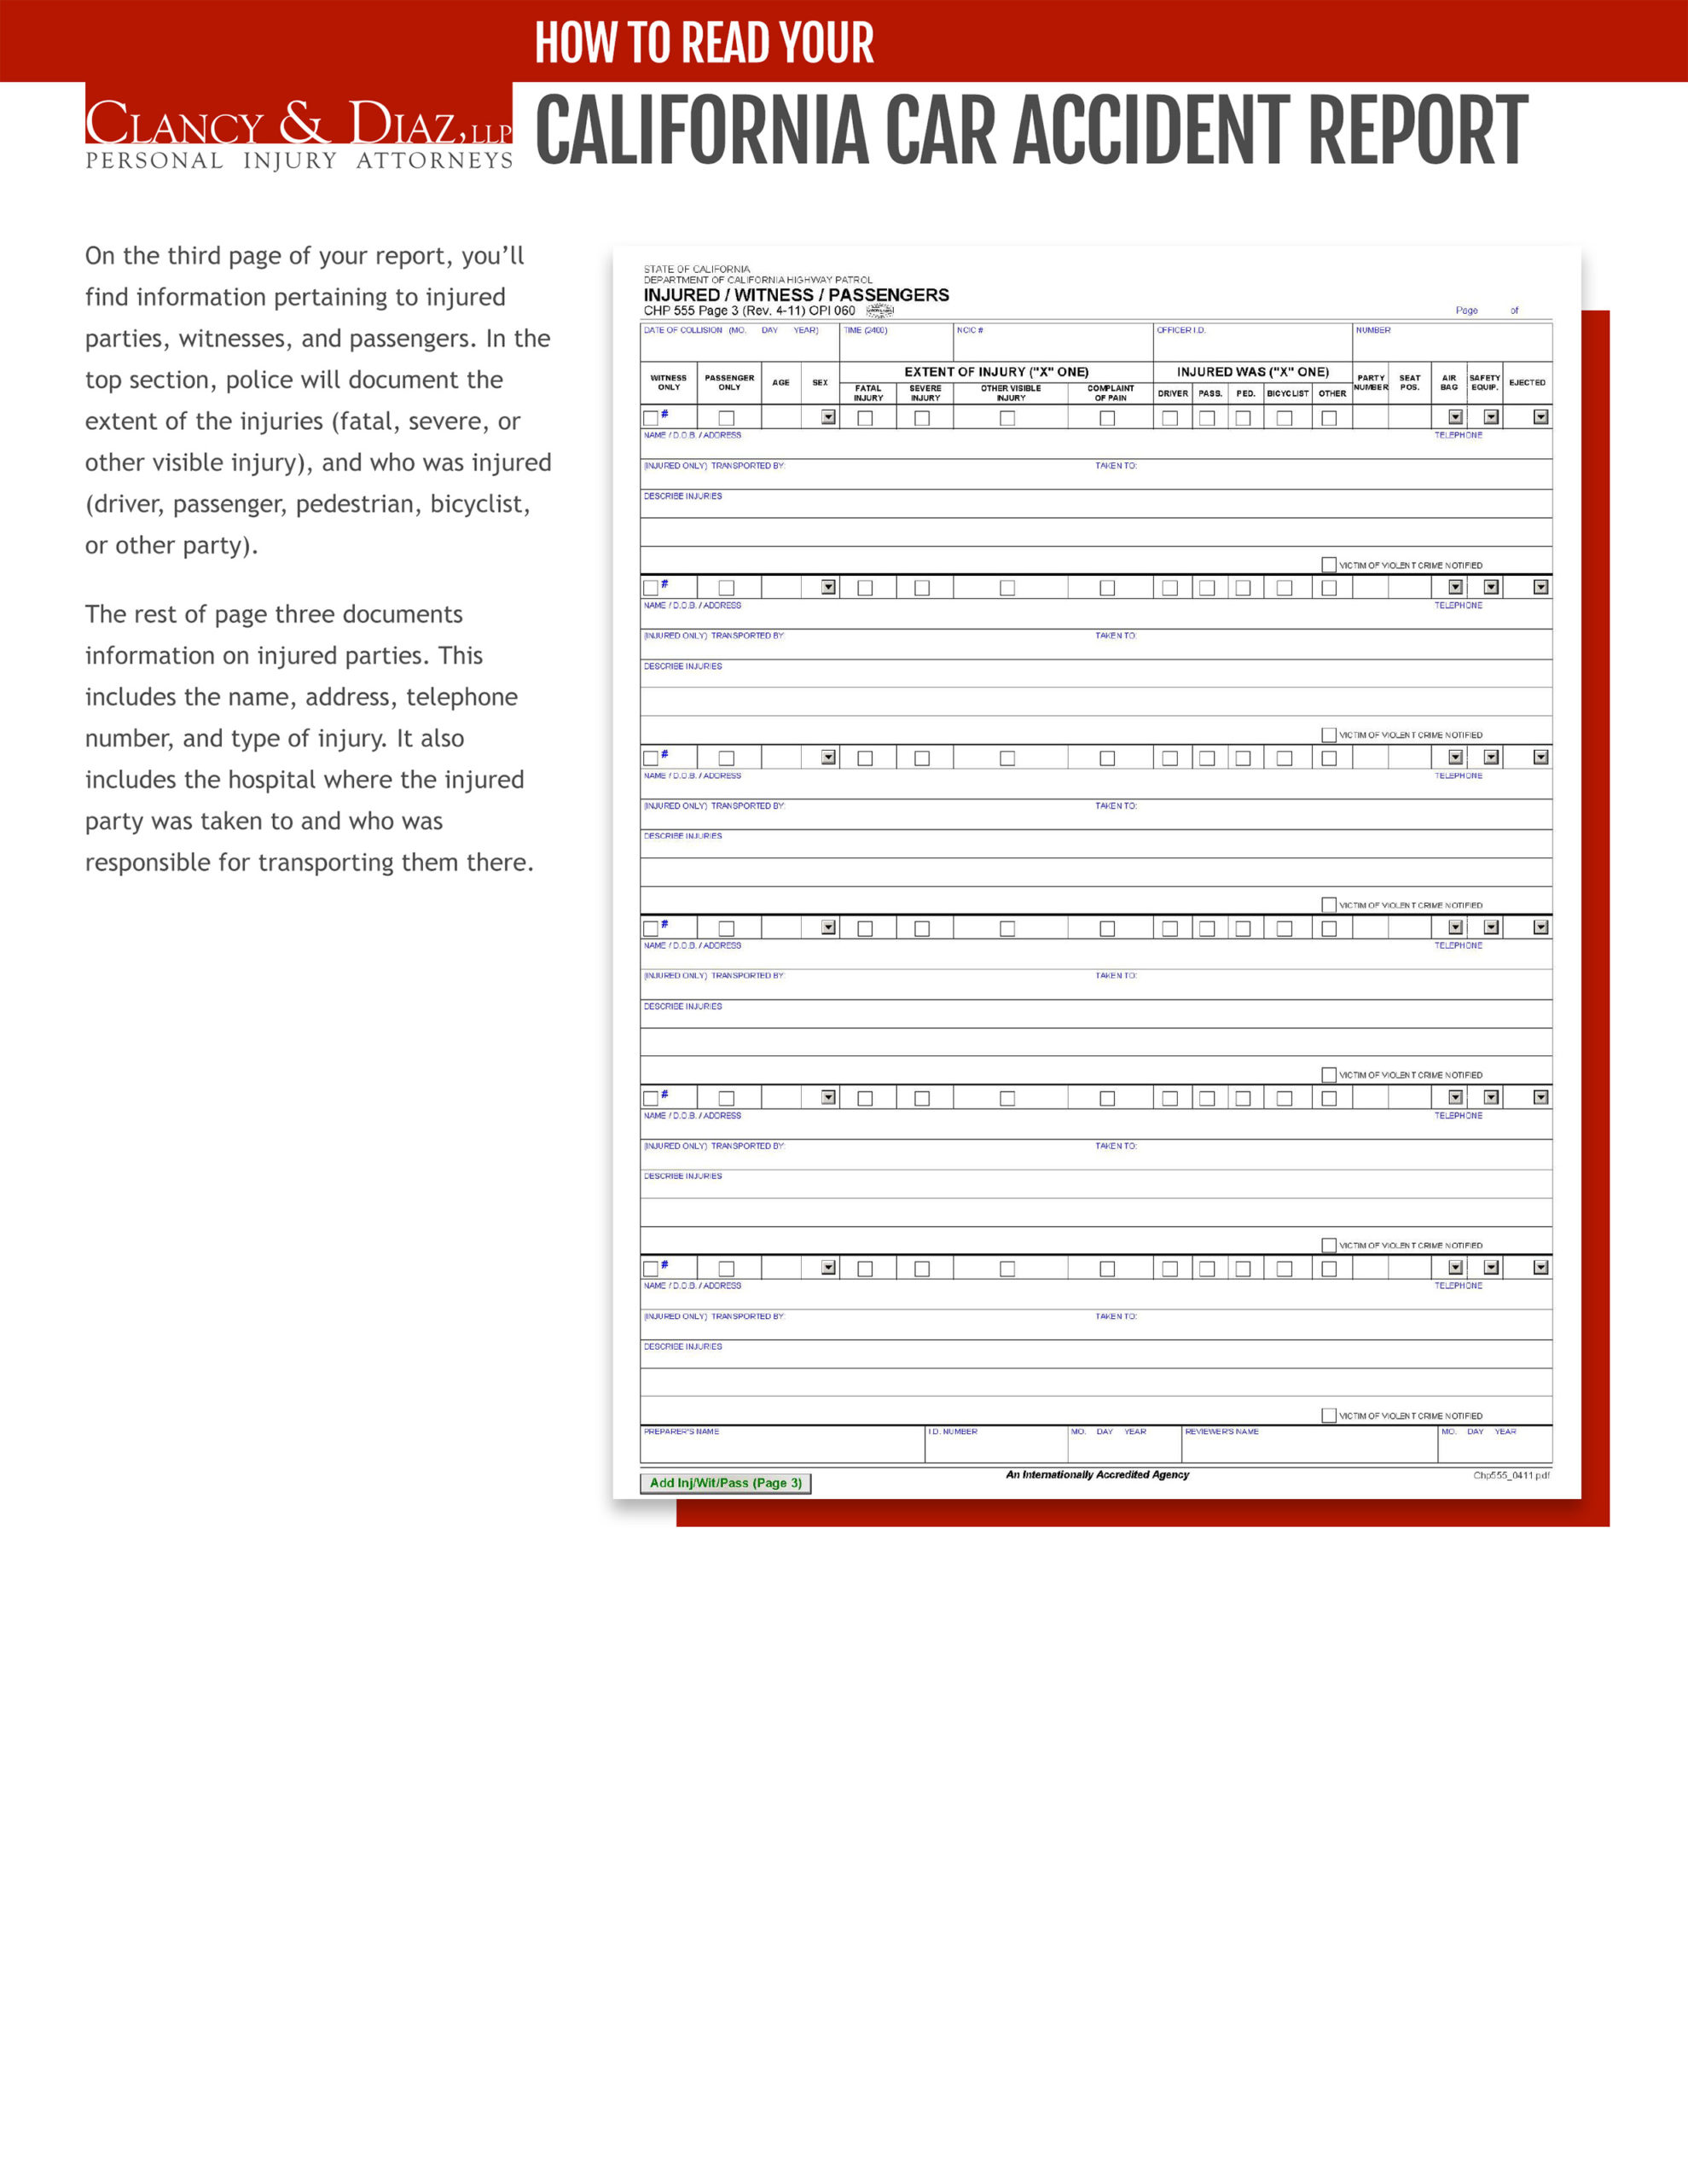 California Car Accident Report page 3